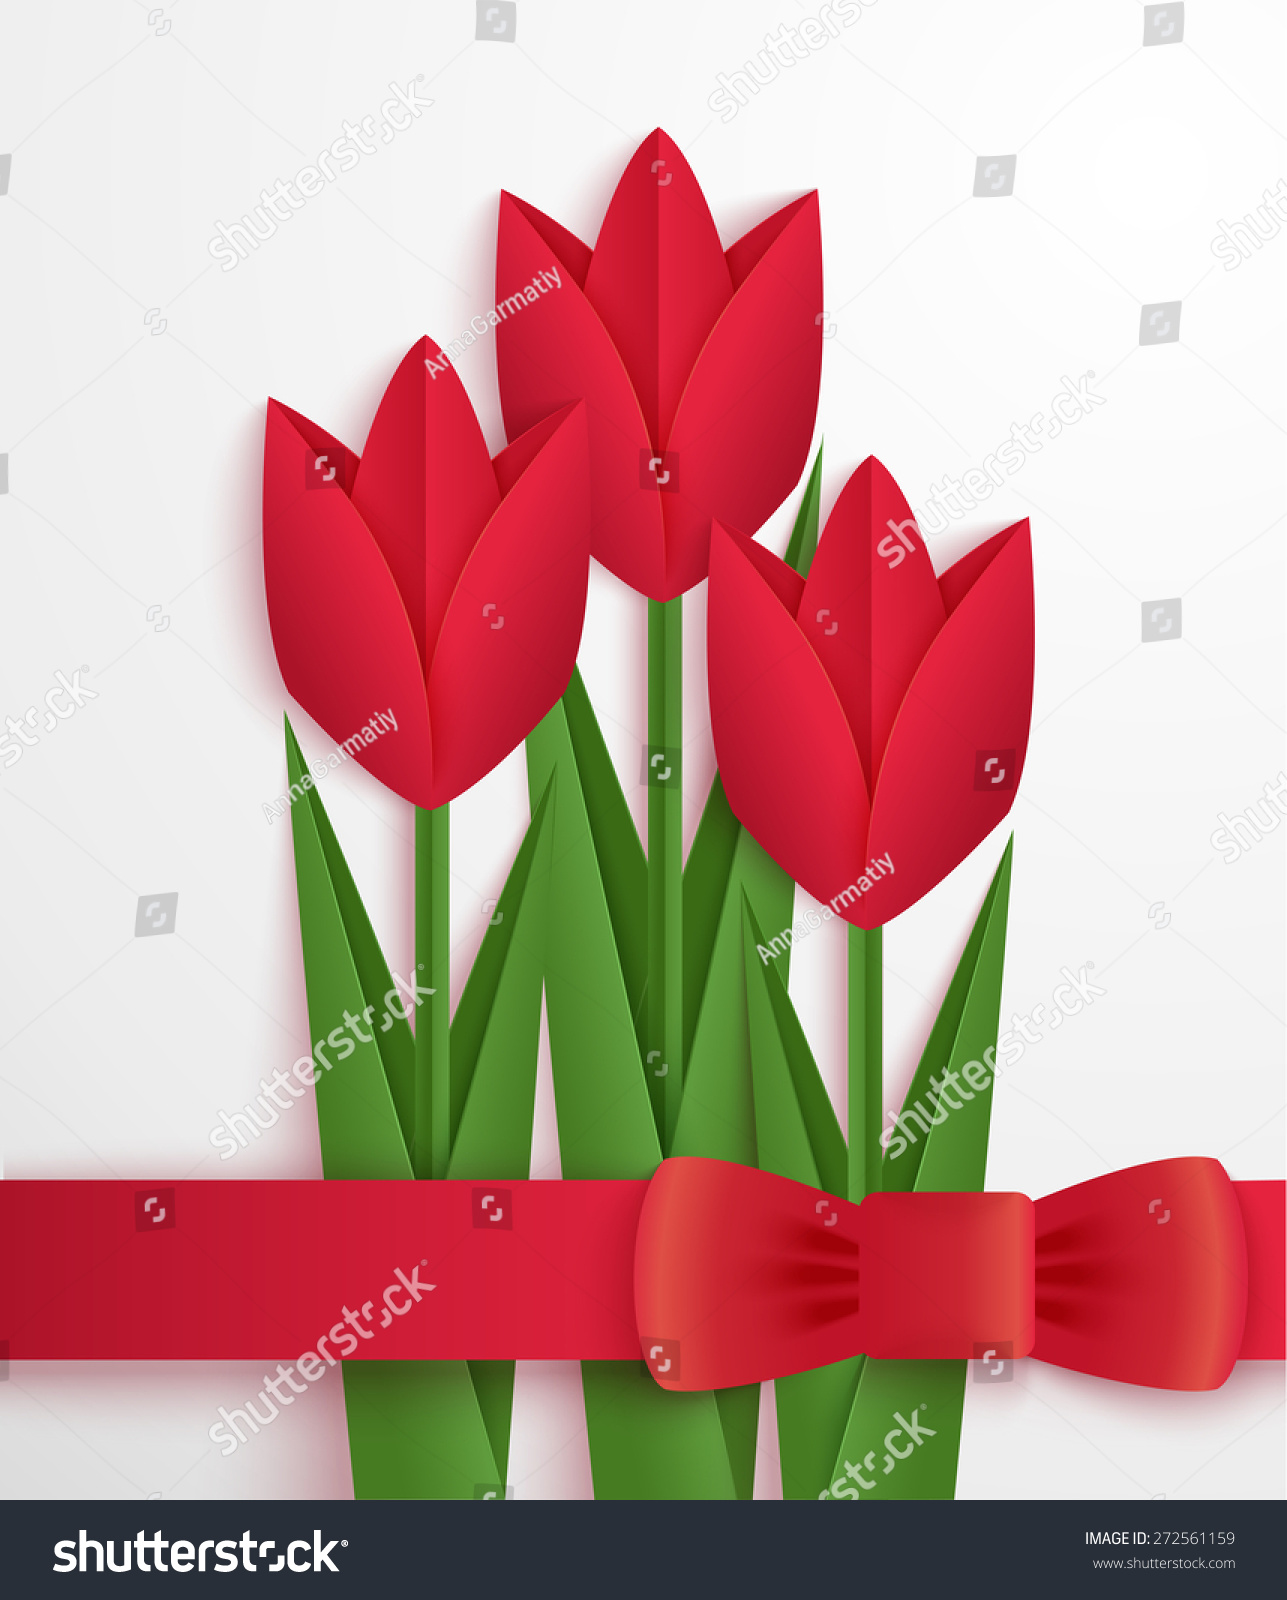 Red paper tulips card greeting card stock vector 272561159 red paper tulips card greeting card stock vector 272561159 shutterstock jeuxipadfo Image collections